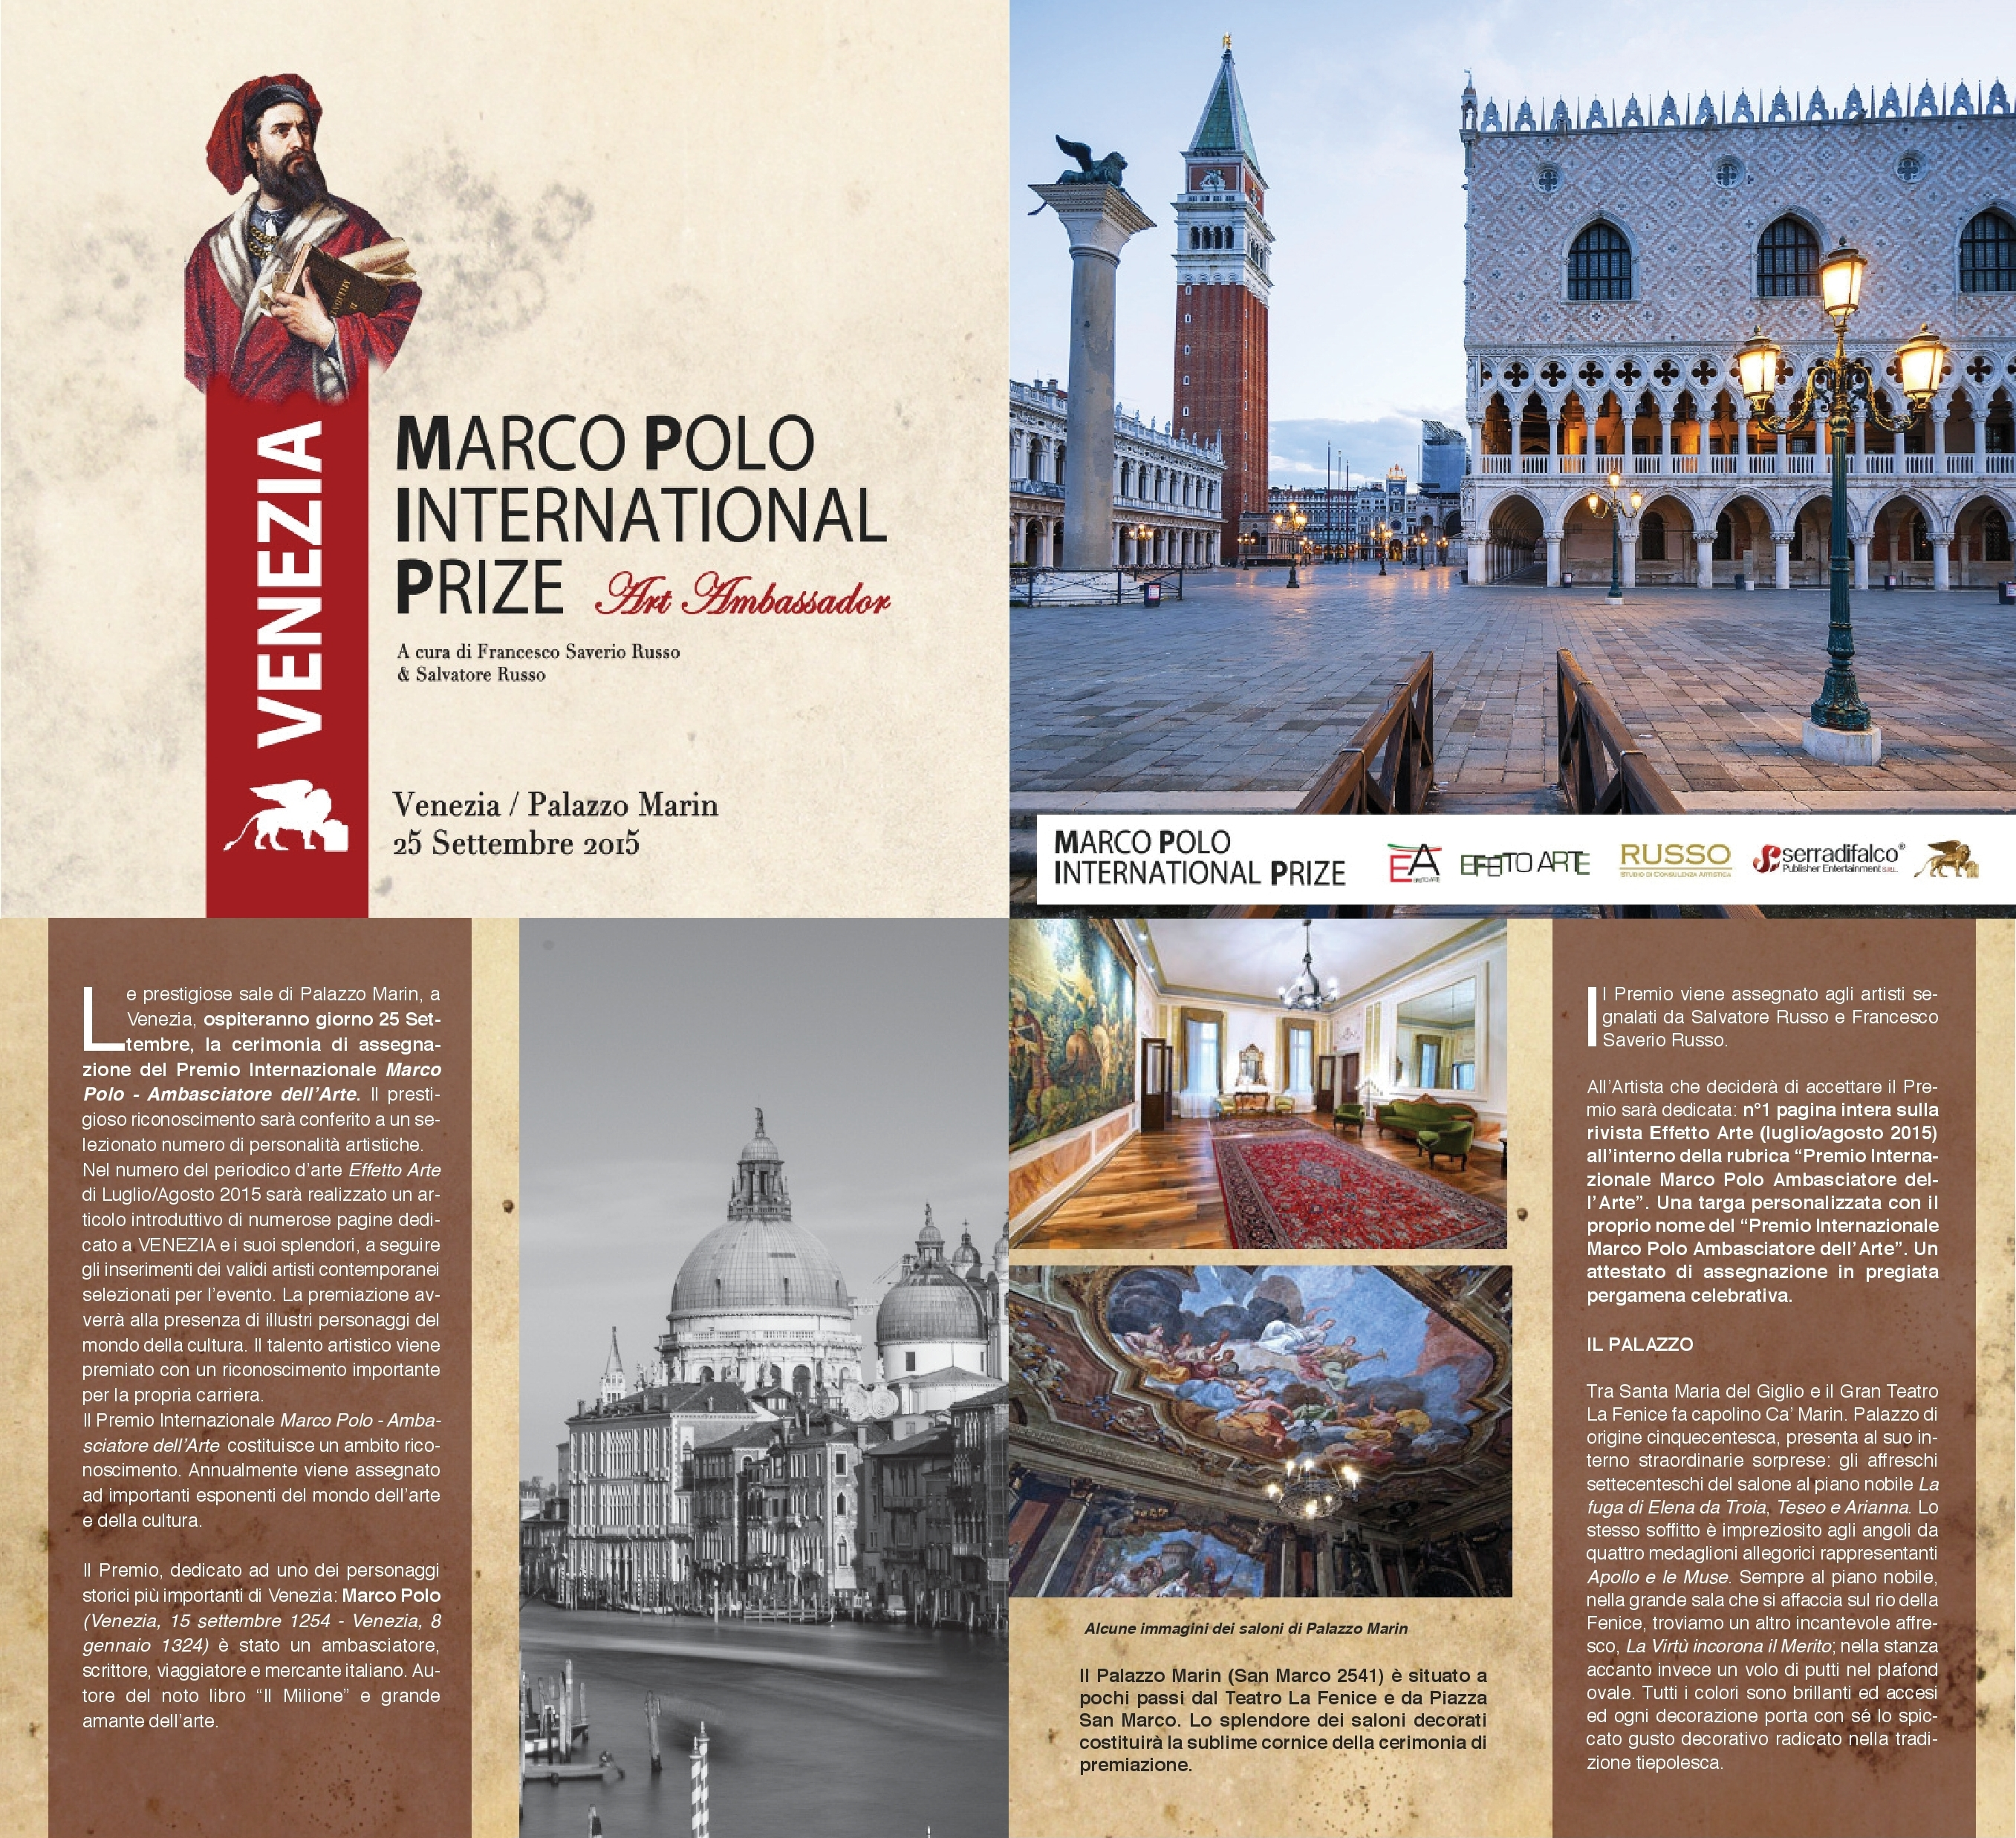 marco polo essay introduction Italophile book reviews in the footsteps of marco polo marco polo essay conclusion primary source analysis marco polo essay example topics and last weekend i took my family to cebu city for a summer getaway it was my own way of introducing my kids maya and marley to the wonderful world of essay on.